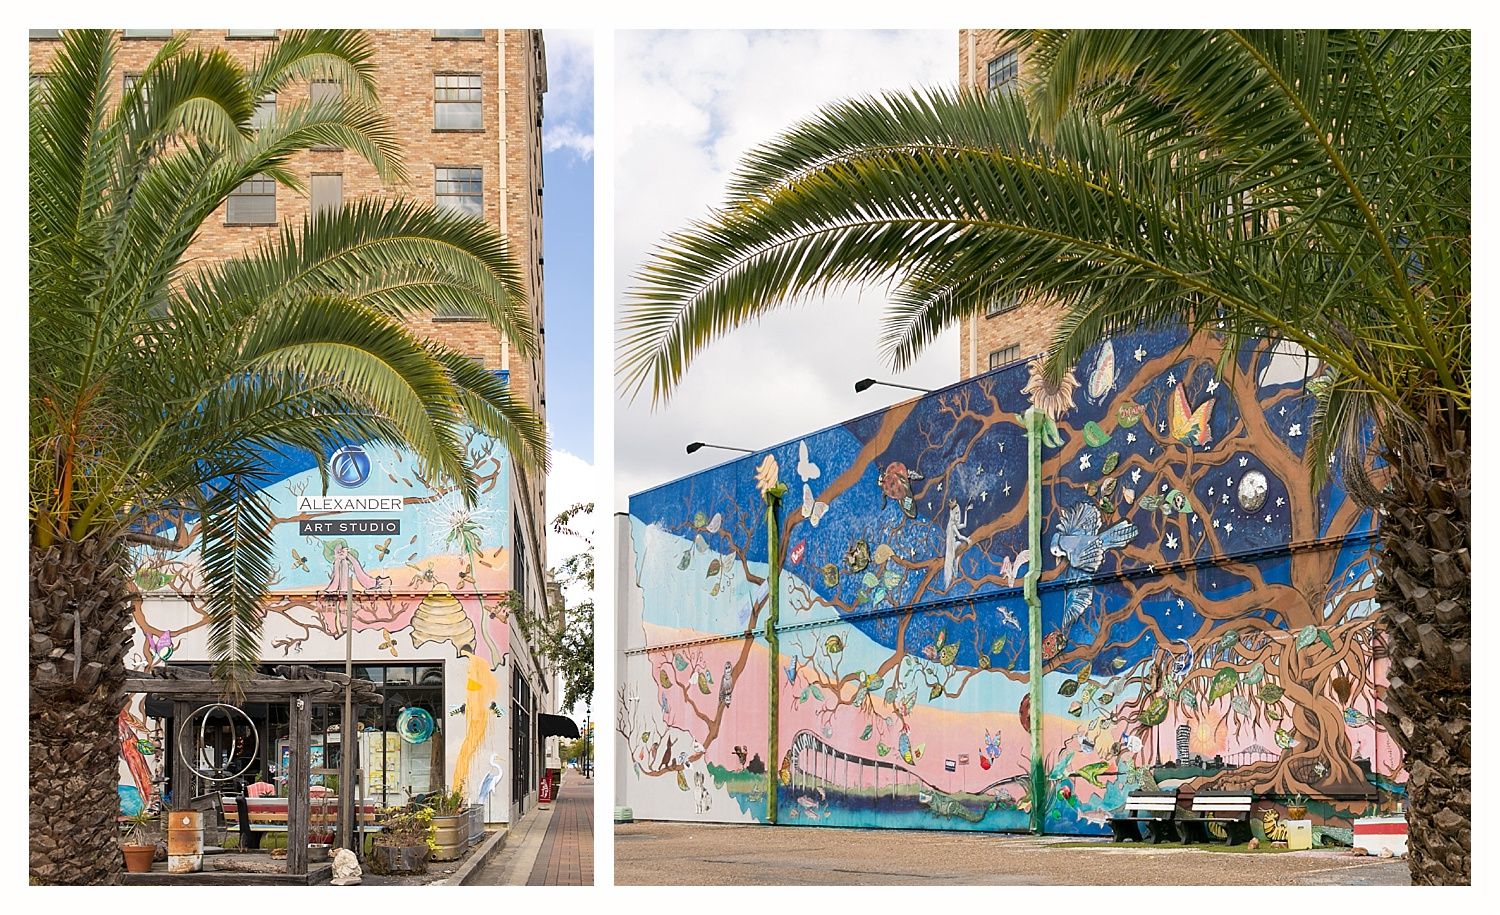 mural and palm tree in downtown Lake Charles, Louisiana